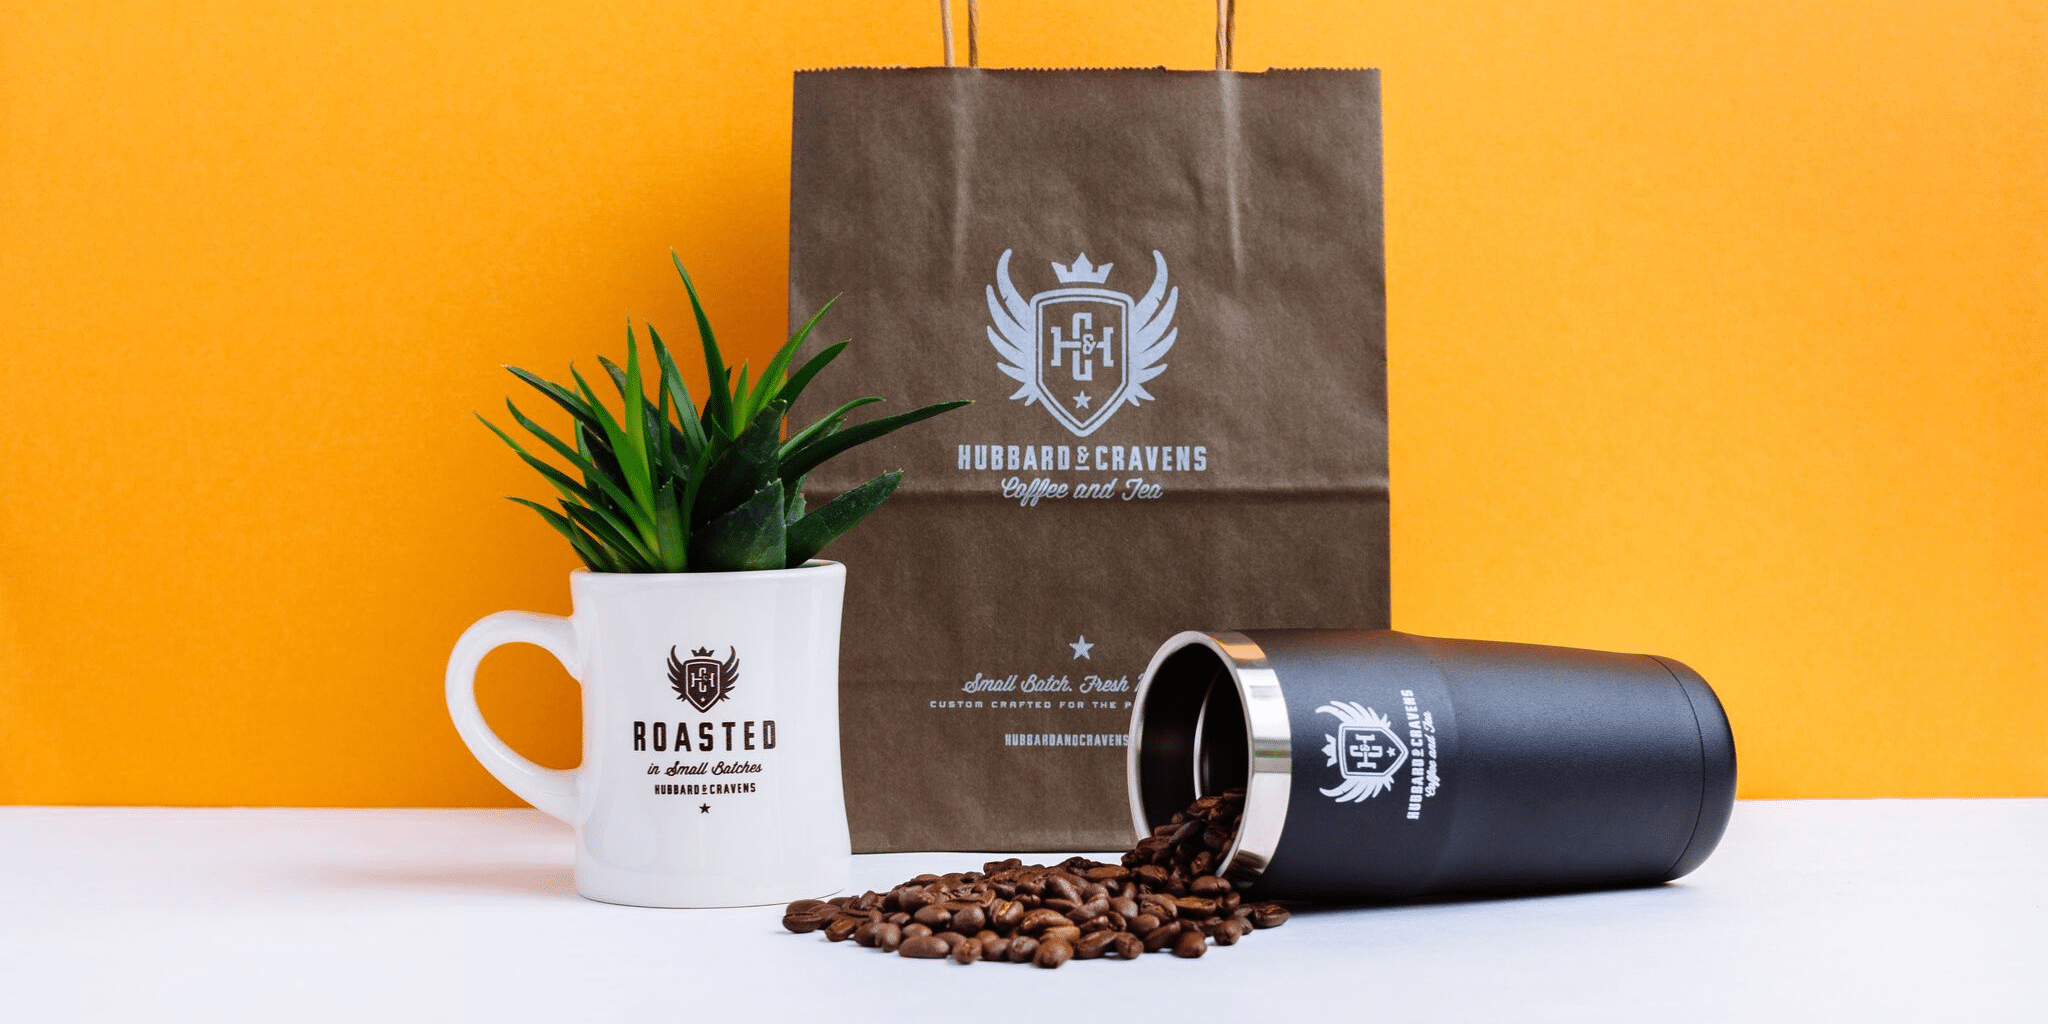 coffee schwag on a vibrant yellow background